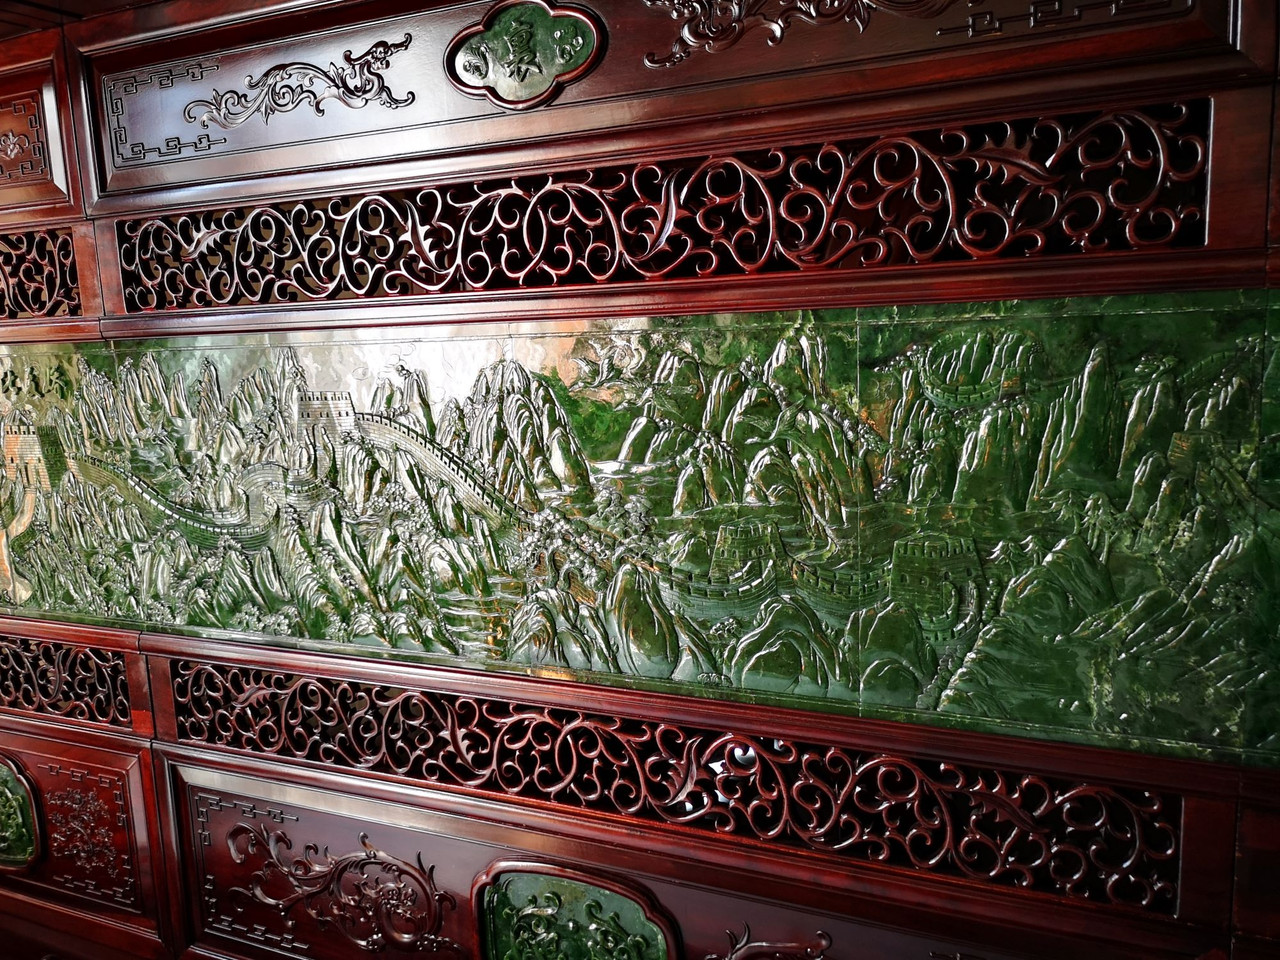 5.76m*2.50m Spinach Jade Rosewood Chinese Screen The Great Wall 万里长城碧玉屏风